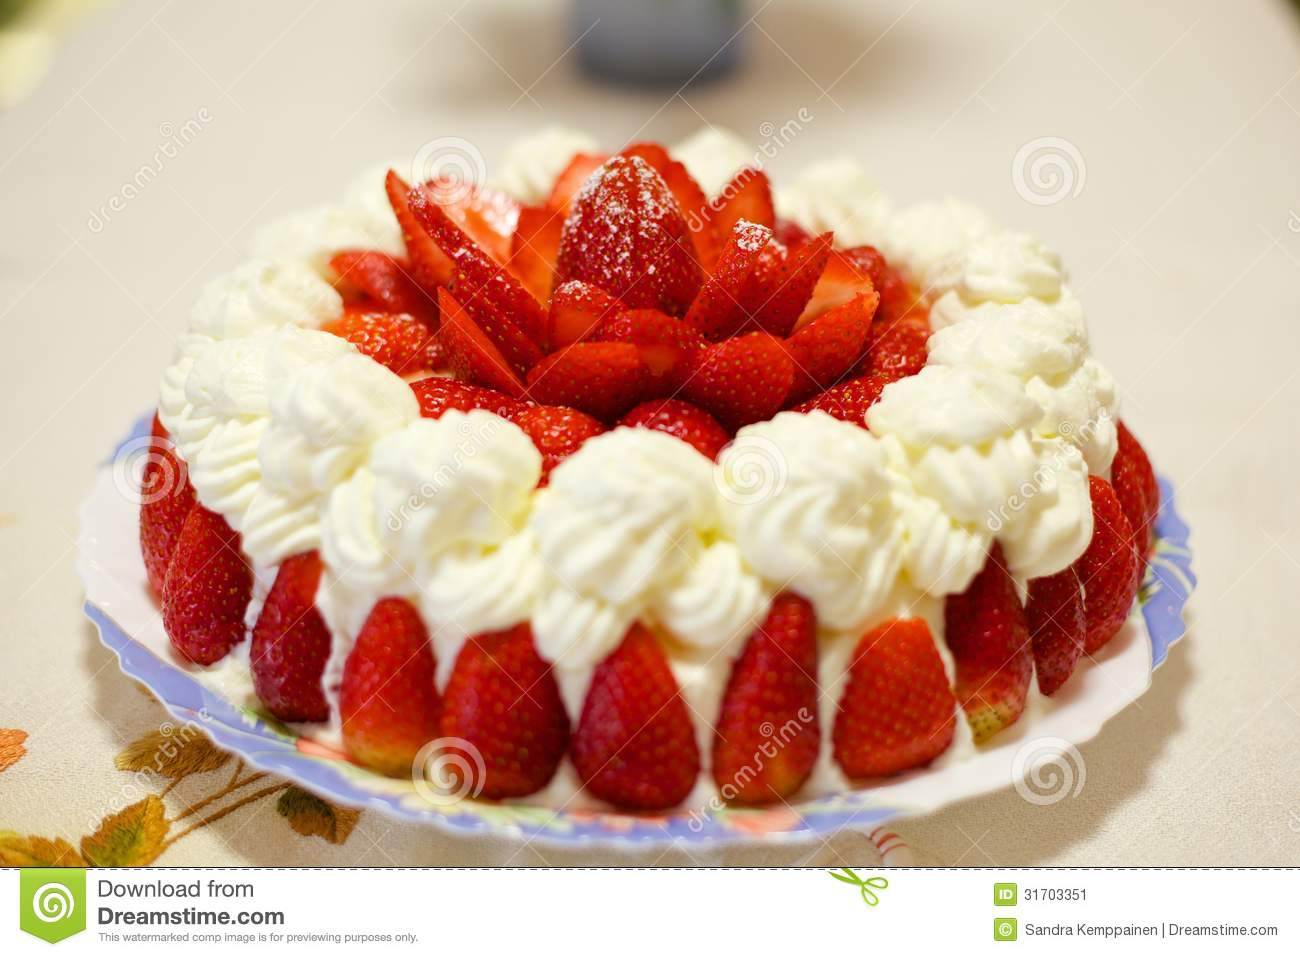 Strawberry cake with whipped cream with slices of strawberries.